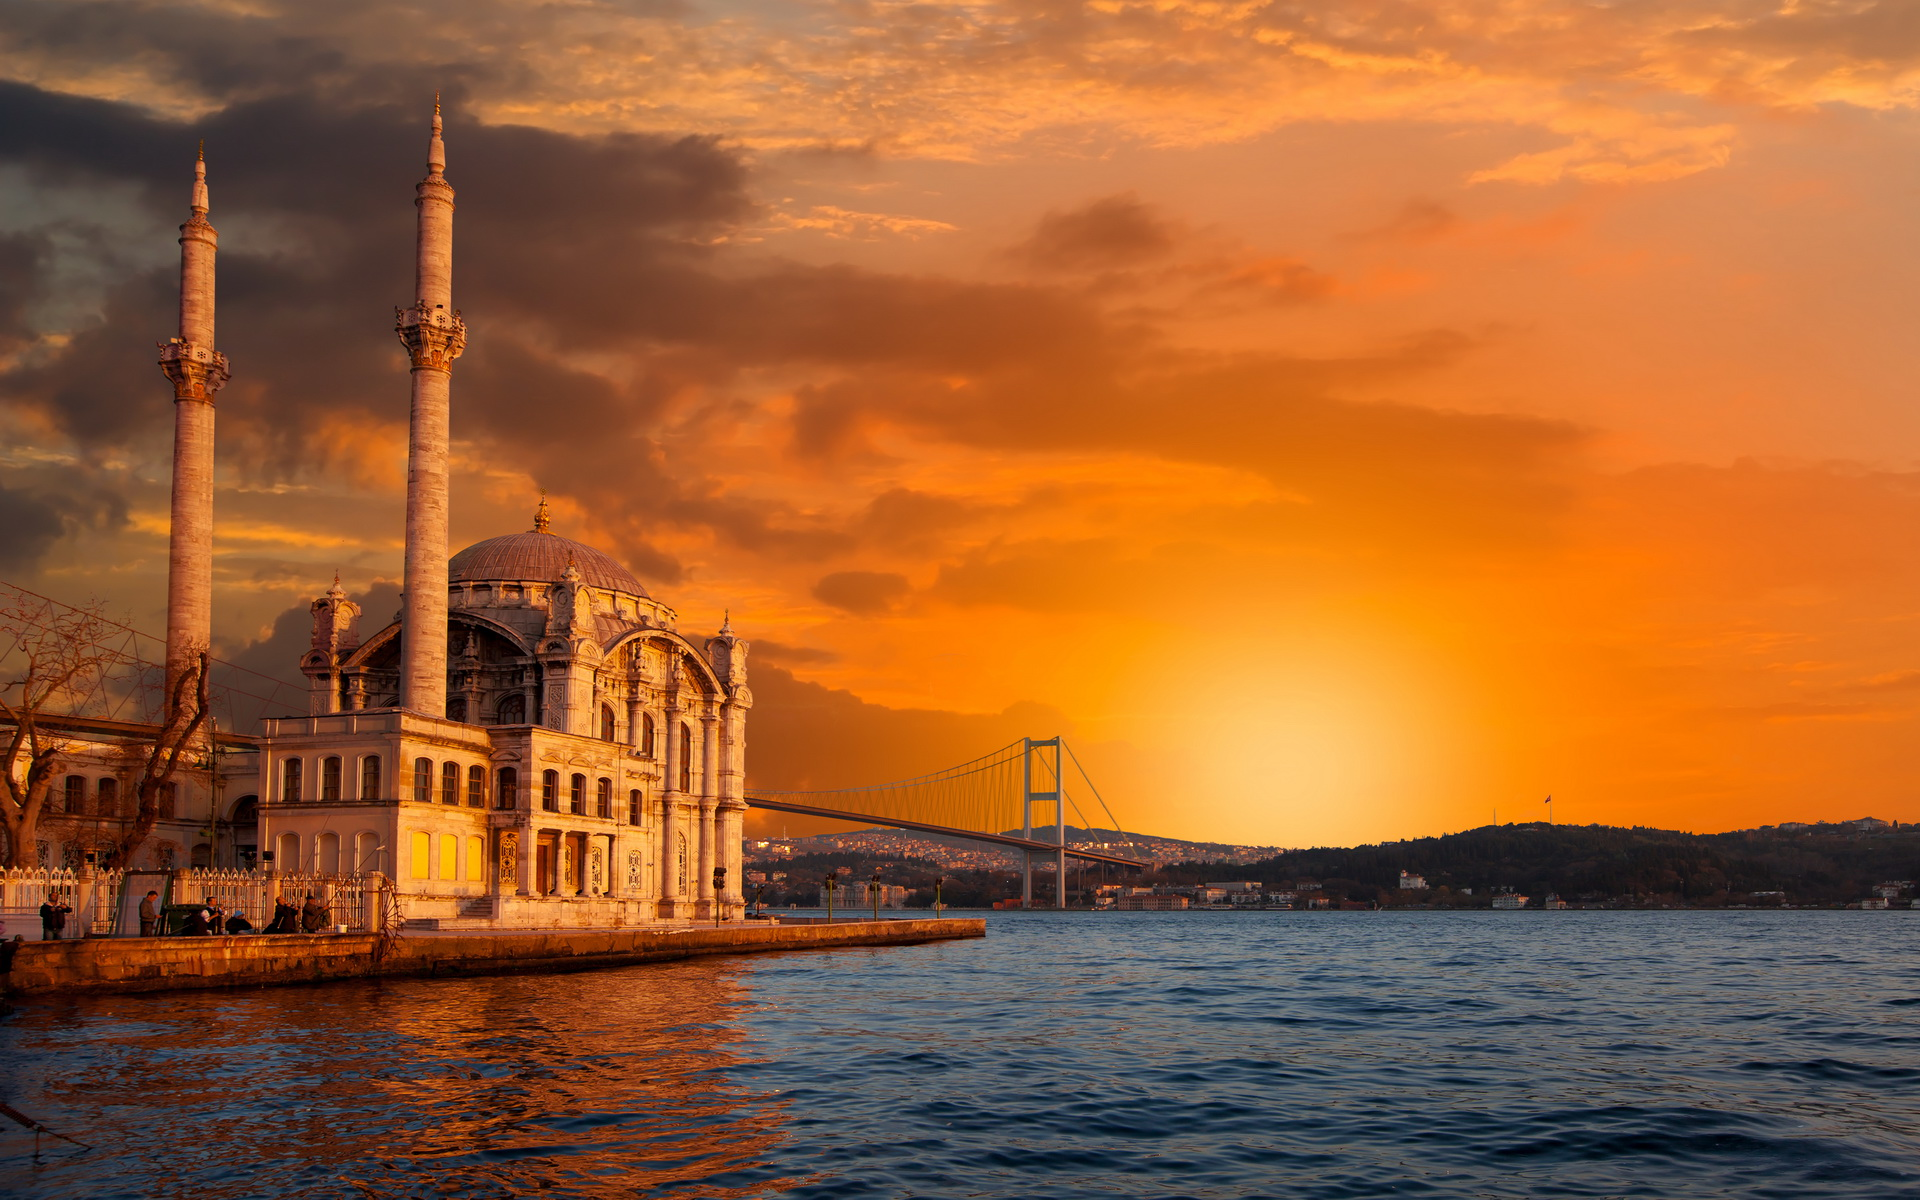 Istanbul Beautiful Turkey City Hd Wallpapers High Resolution All